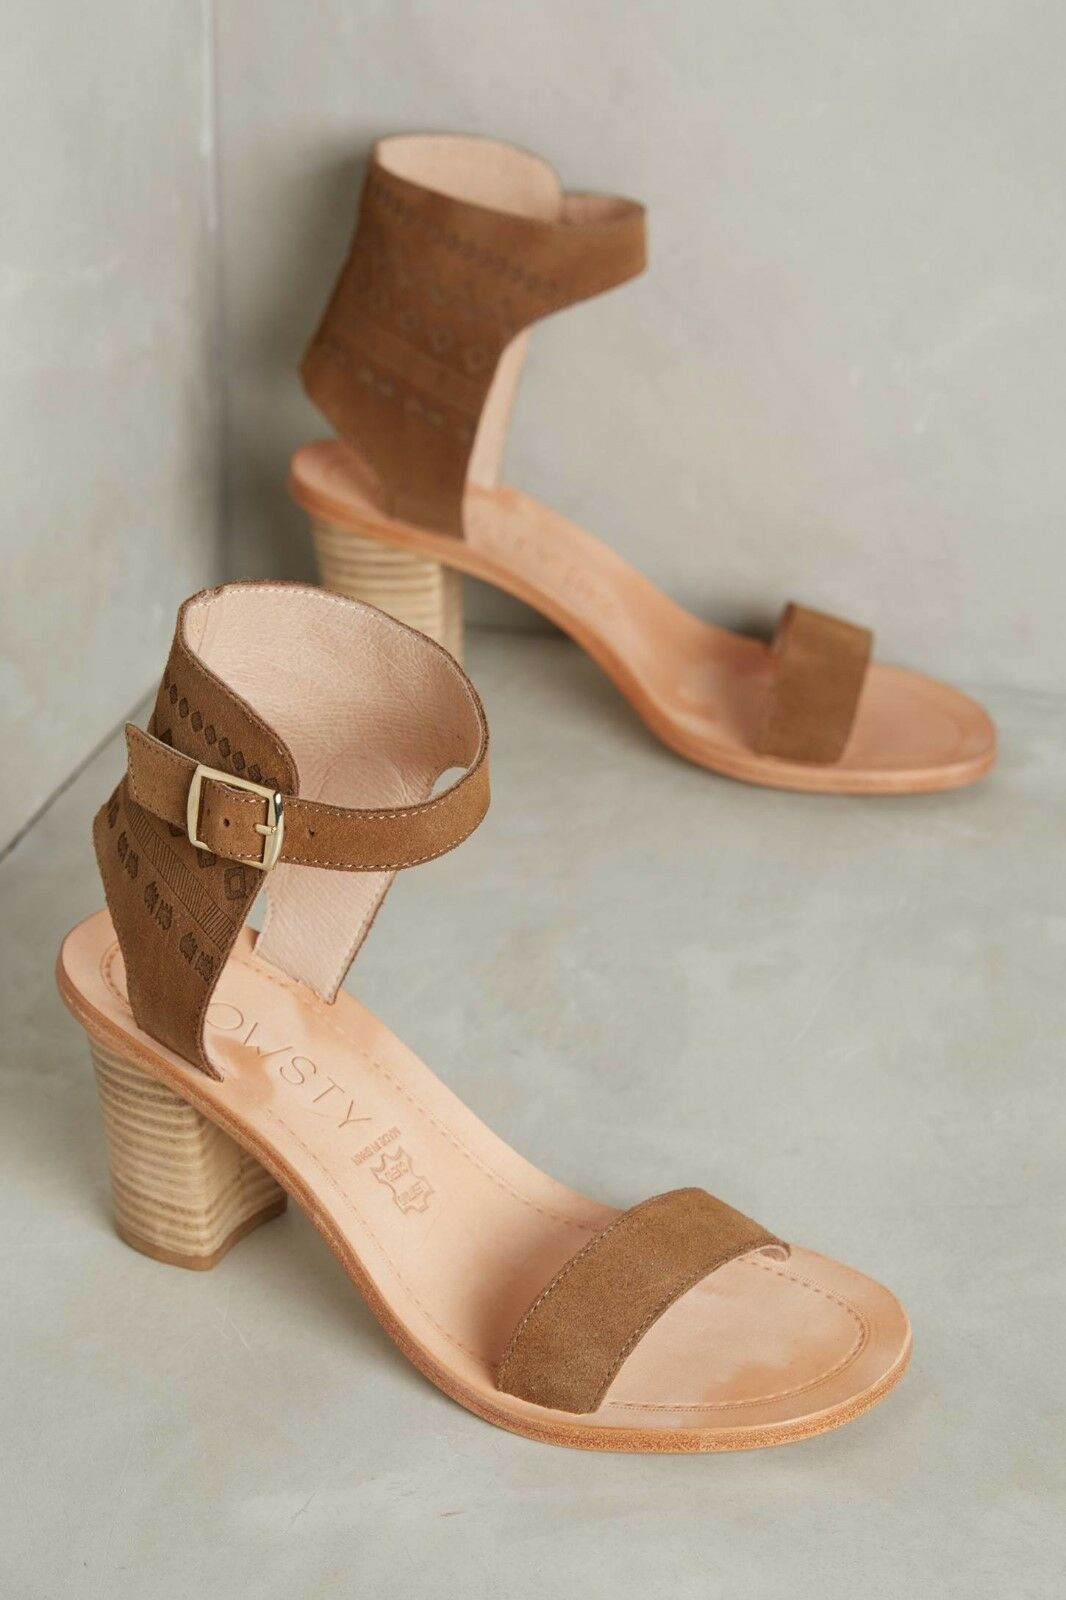 Howsty Women's Celia Leather Leather Leather Heeled Sandals Retail  275 Size 7 841af6